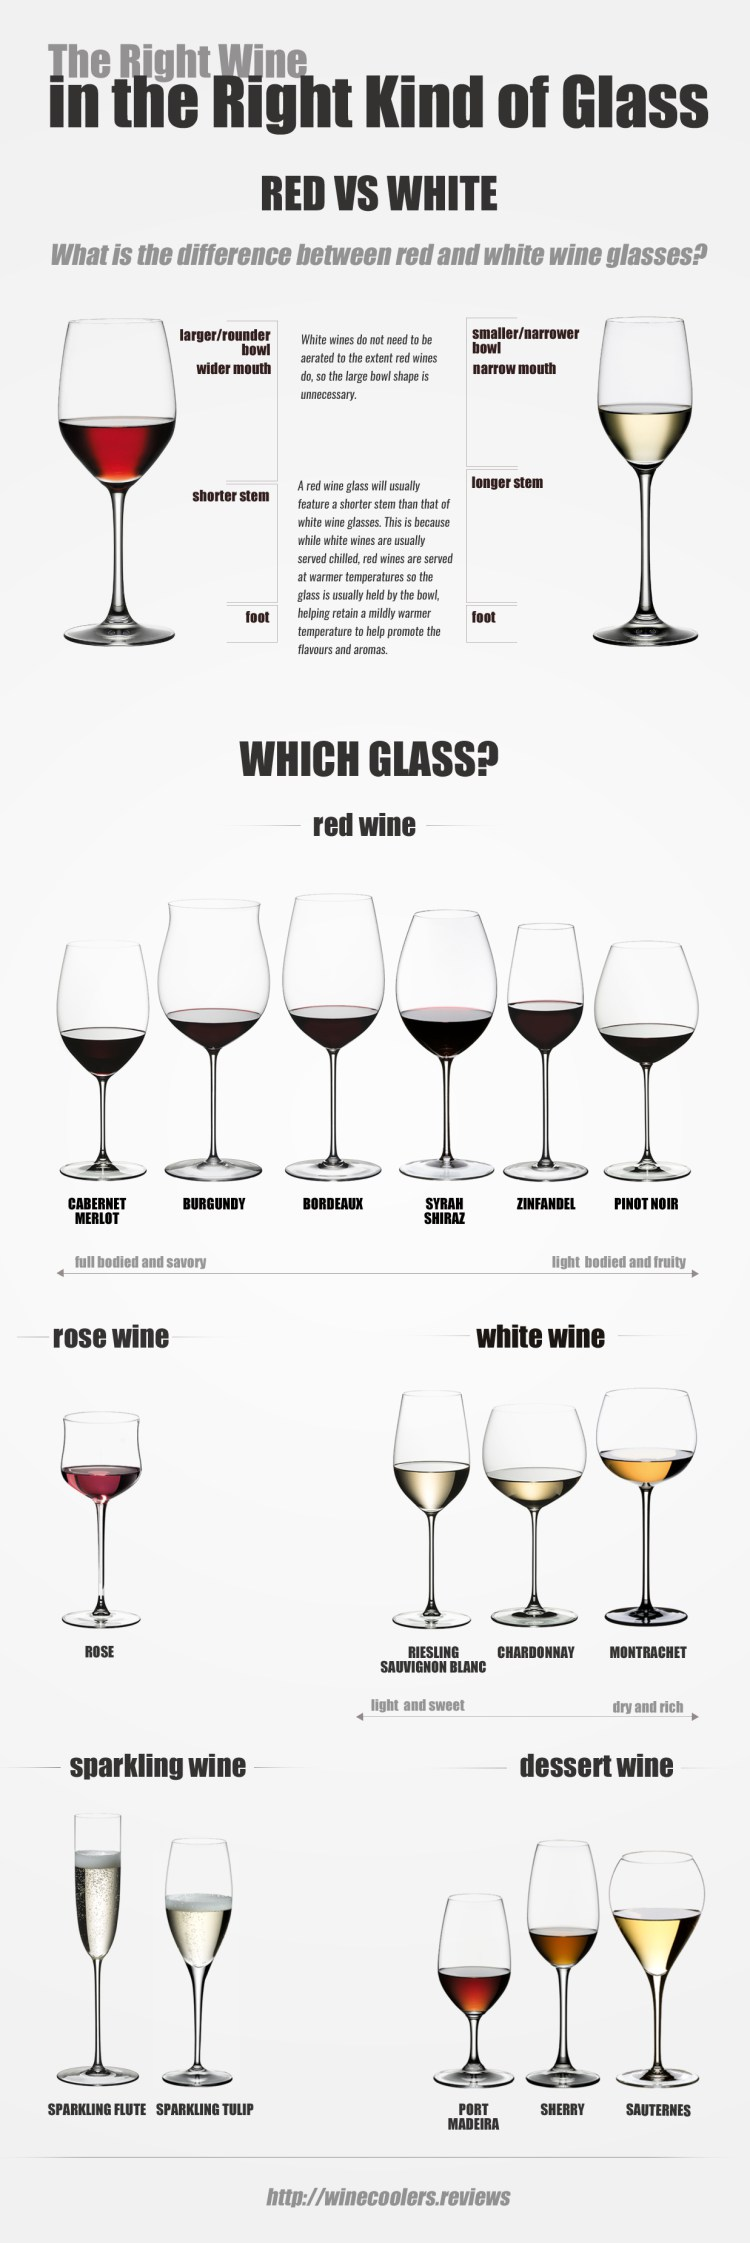 The Right Wine in the Right Kind of Glass  infographic